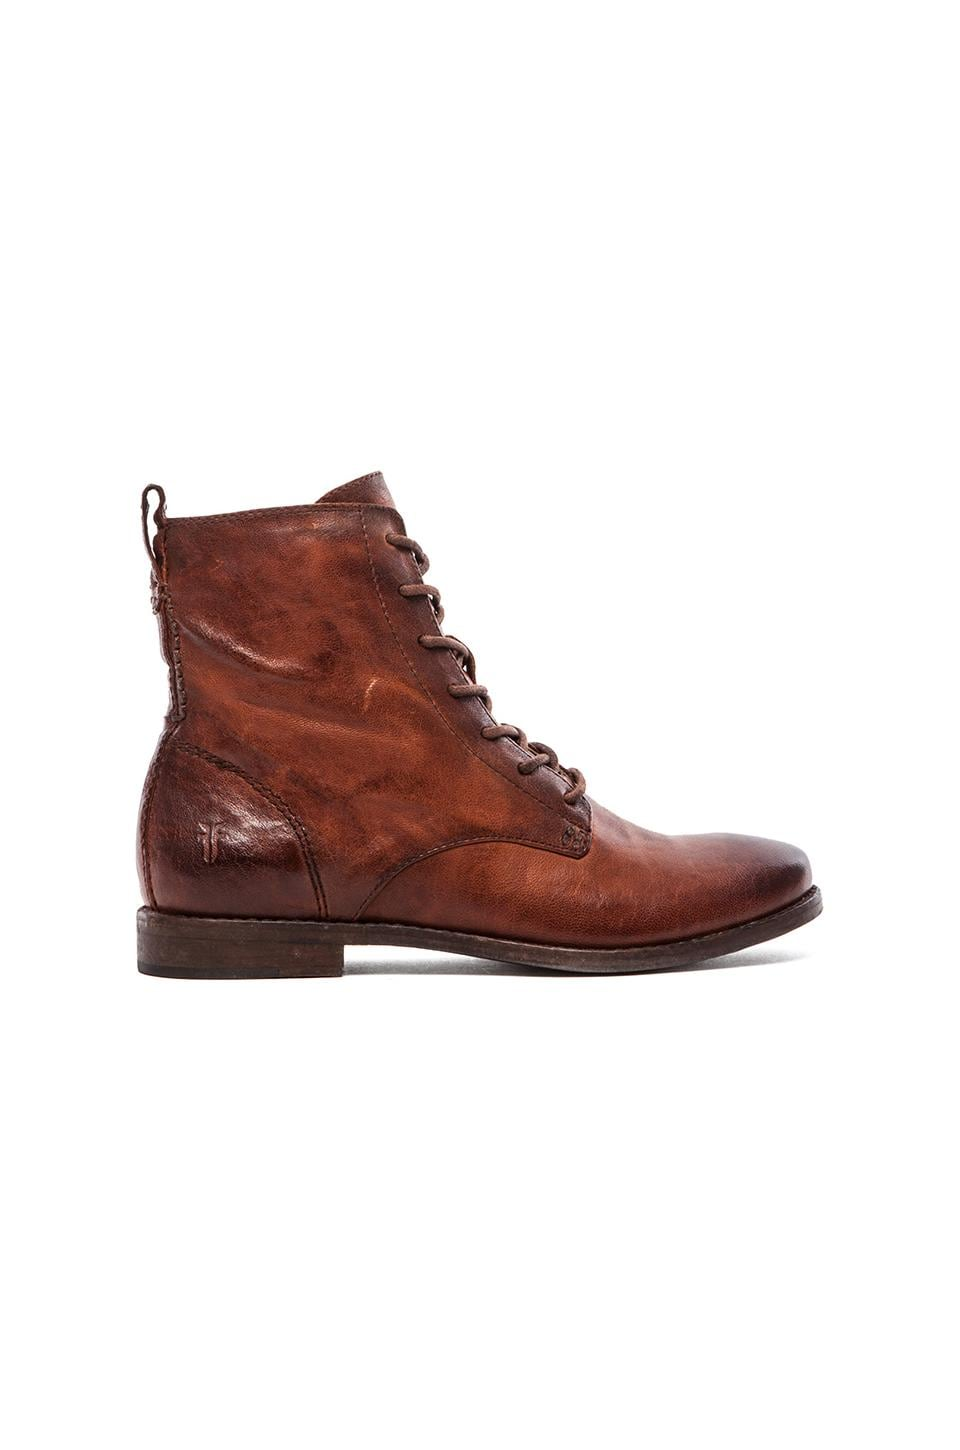 Frye Anna Lace Up Boot in Cognac